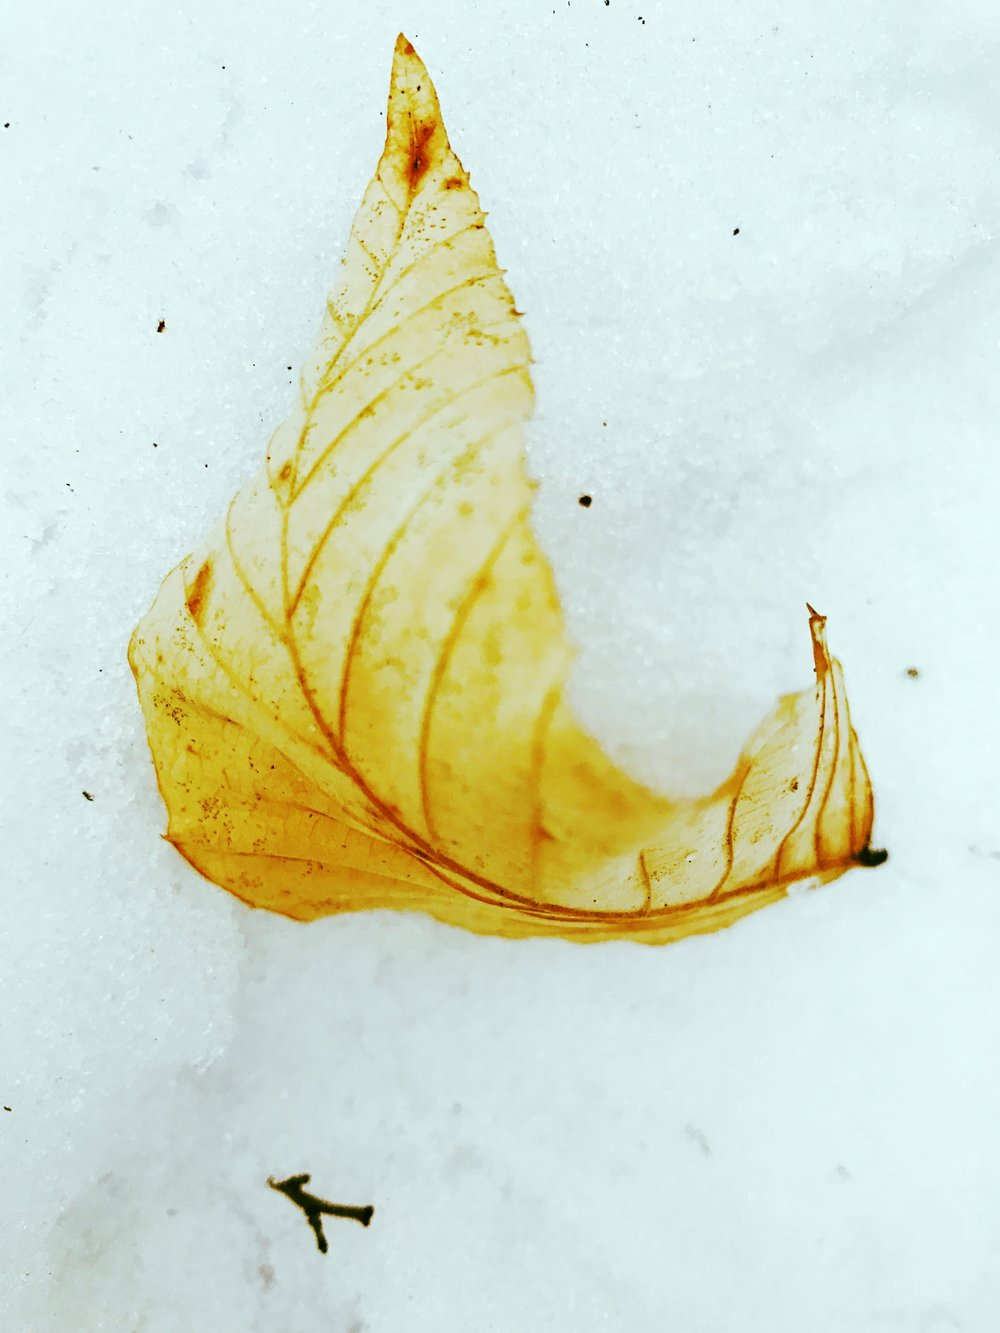 Beech Leaf on Snow